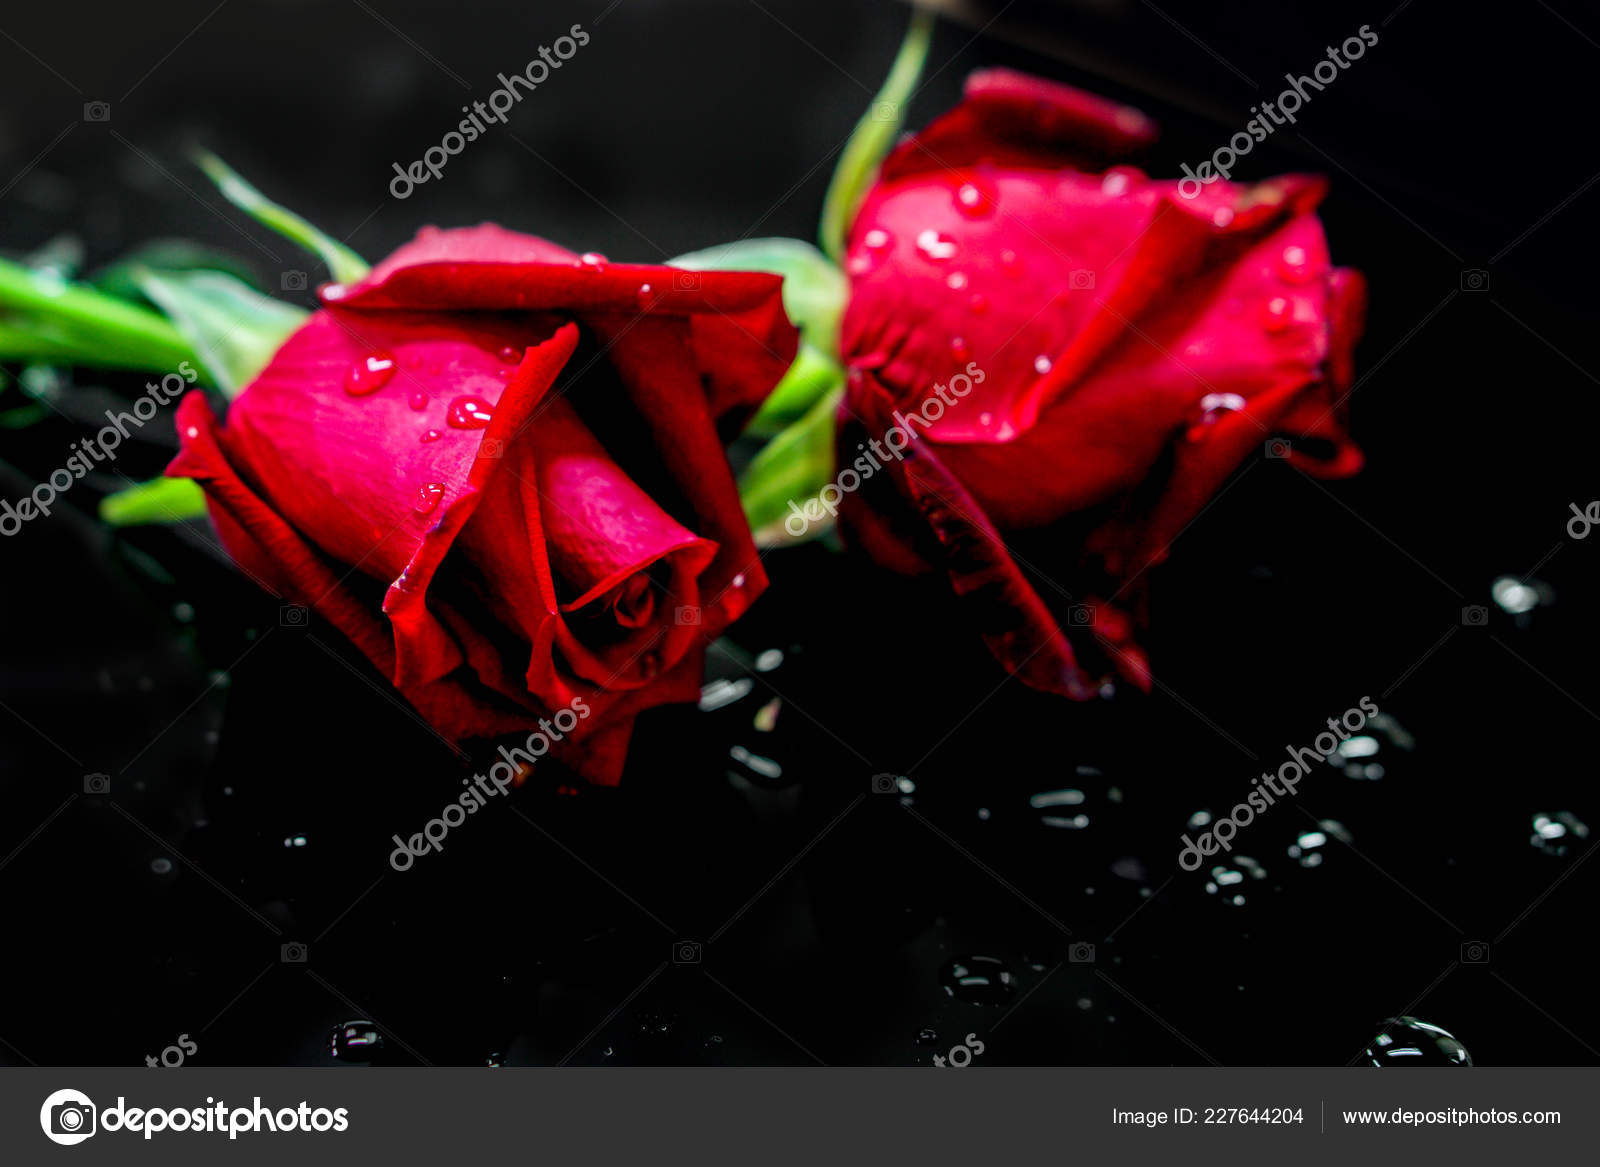 Closeup Young Red British Roses Dew Drops Black Background Stock Photo C Kornkarinv Gmail Com 227644204